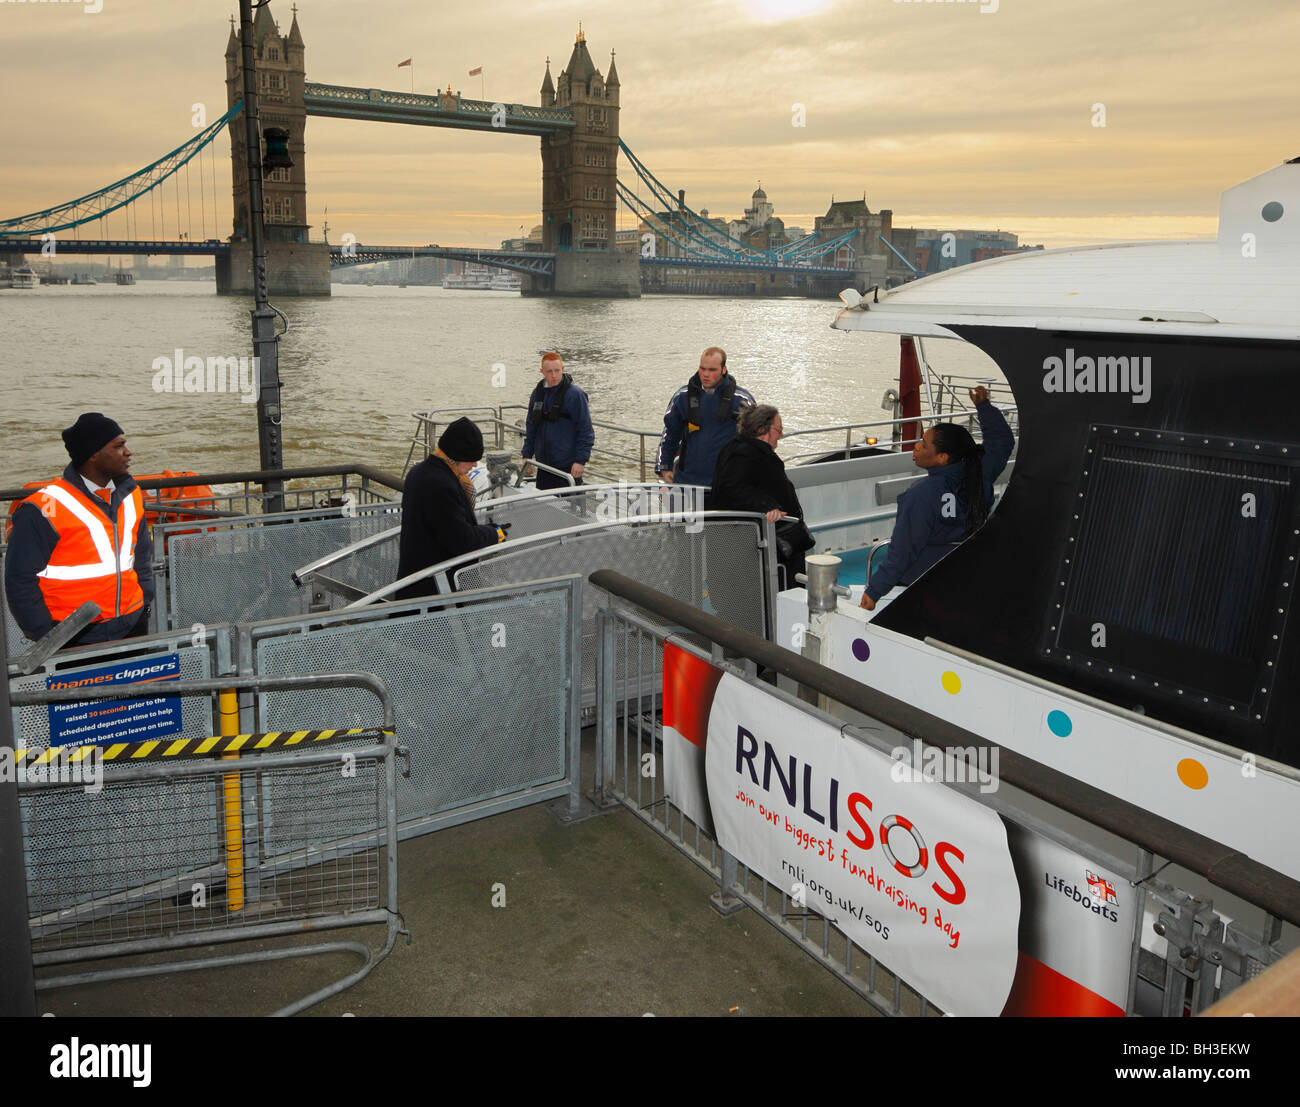 Passengers boarding the Thames Clipper ferry at Tower Bridge. - Stock Image